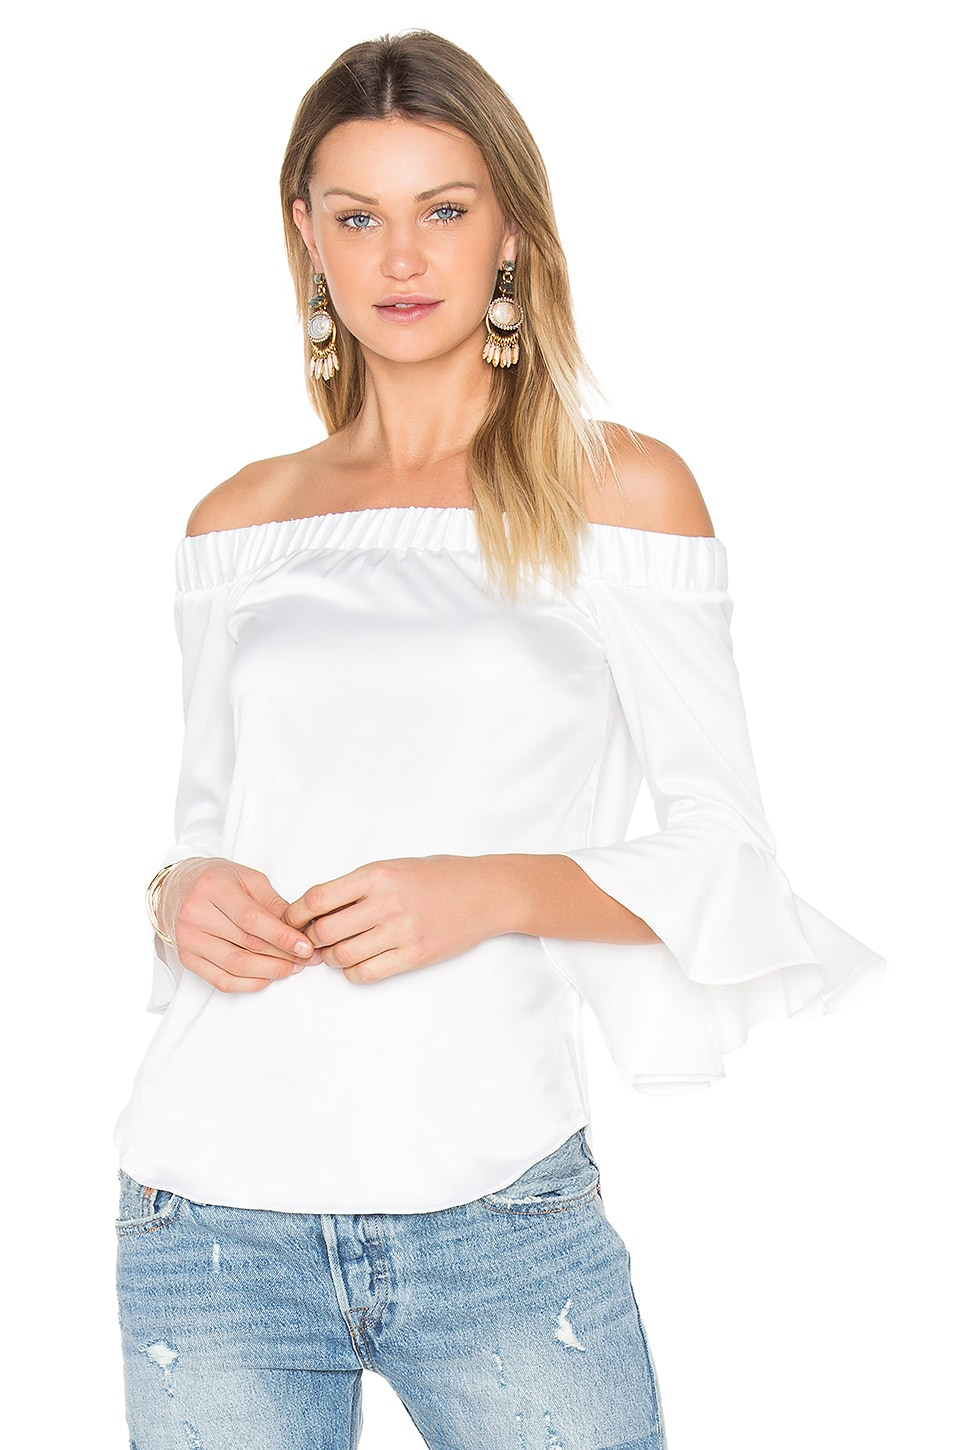 Verdi Square Off Shoulder Top